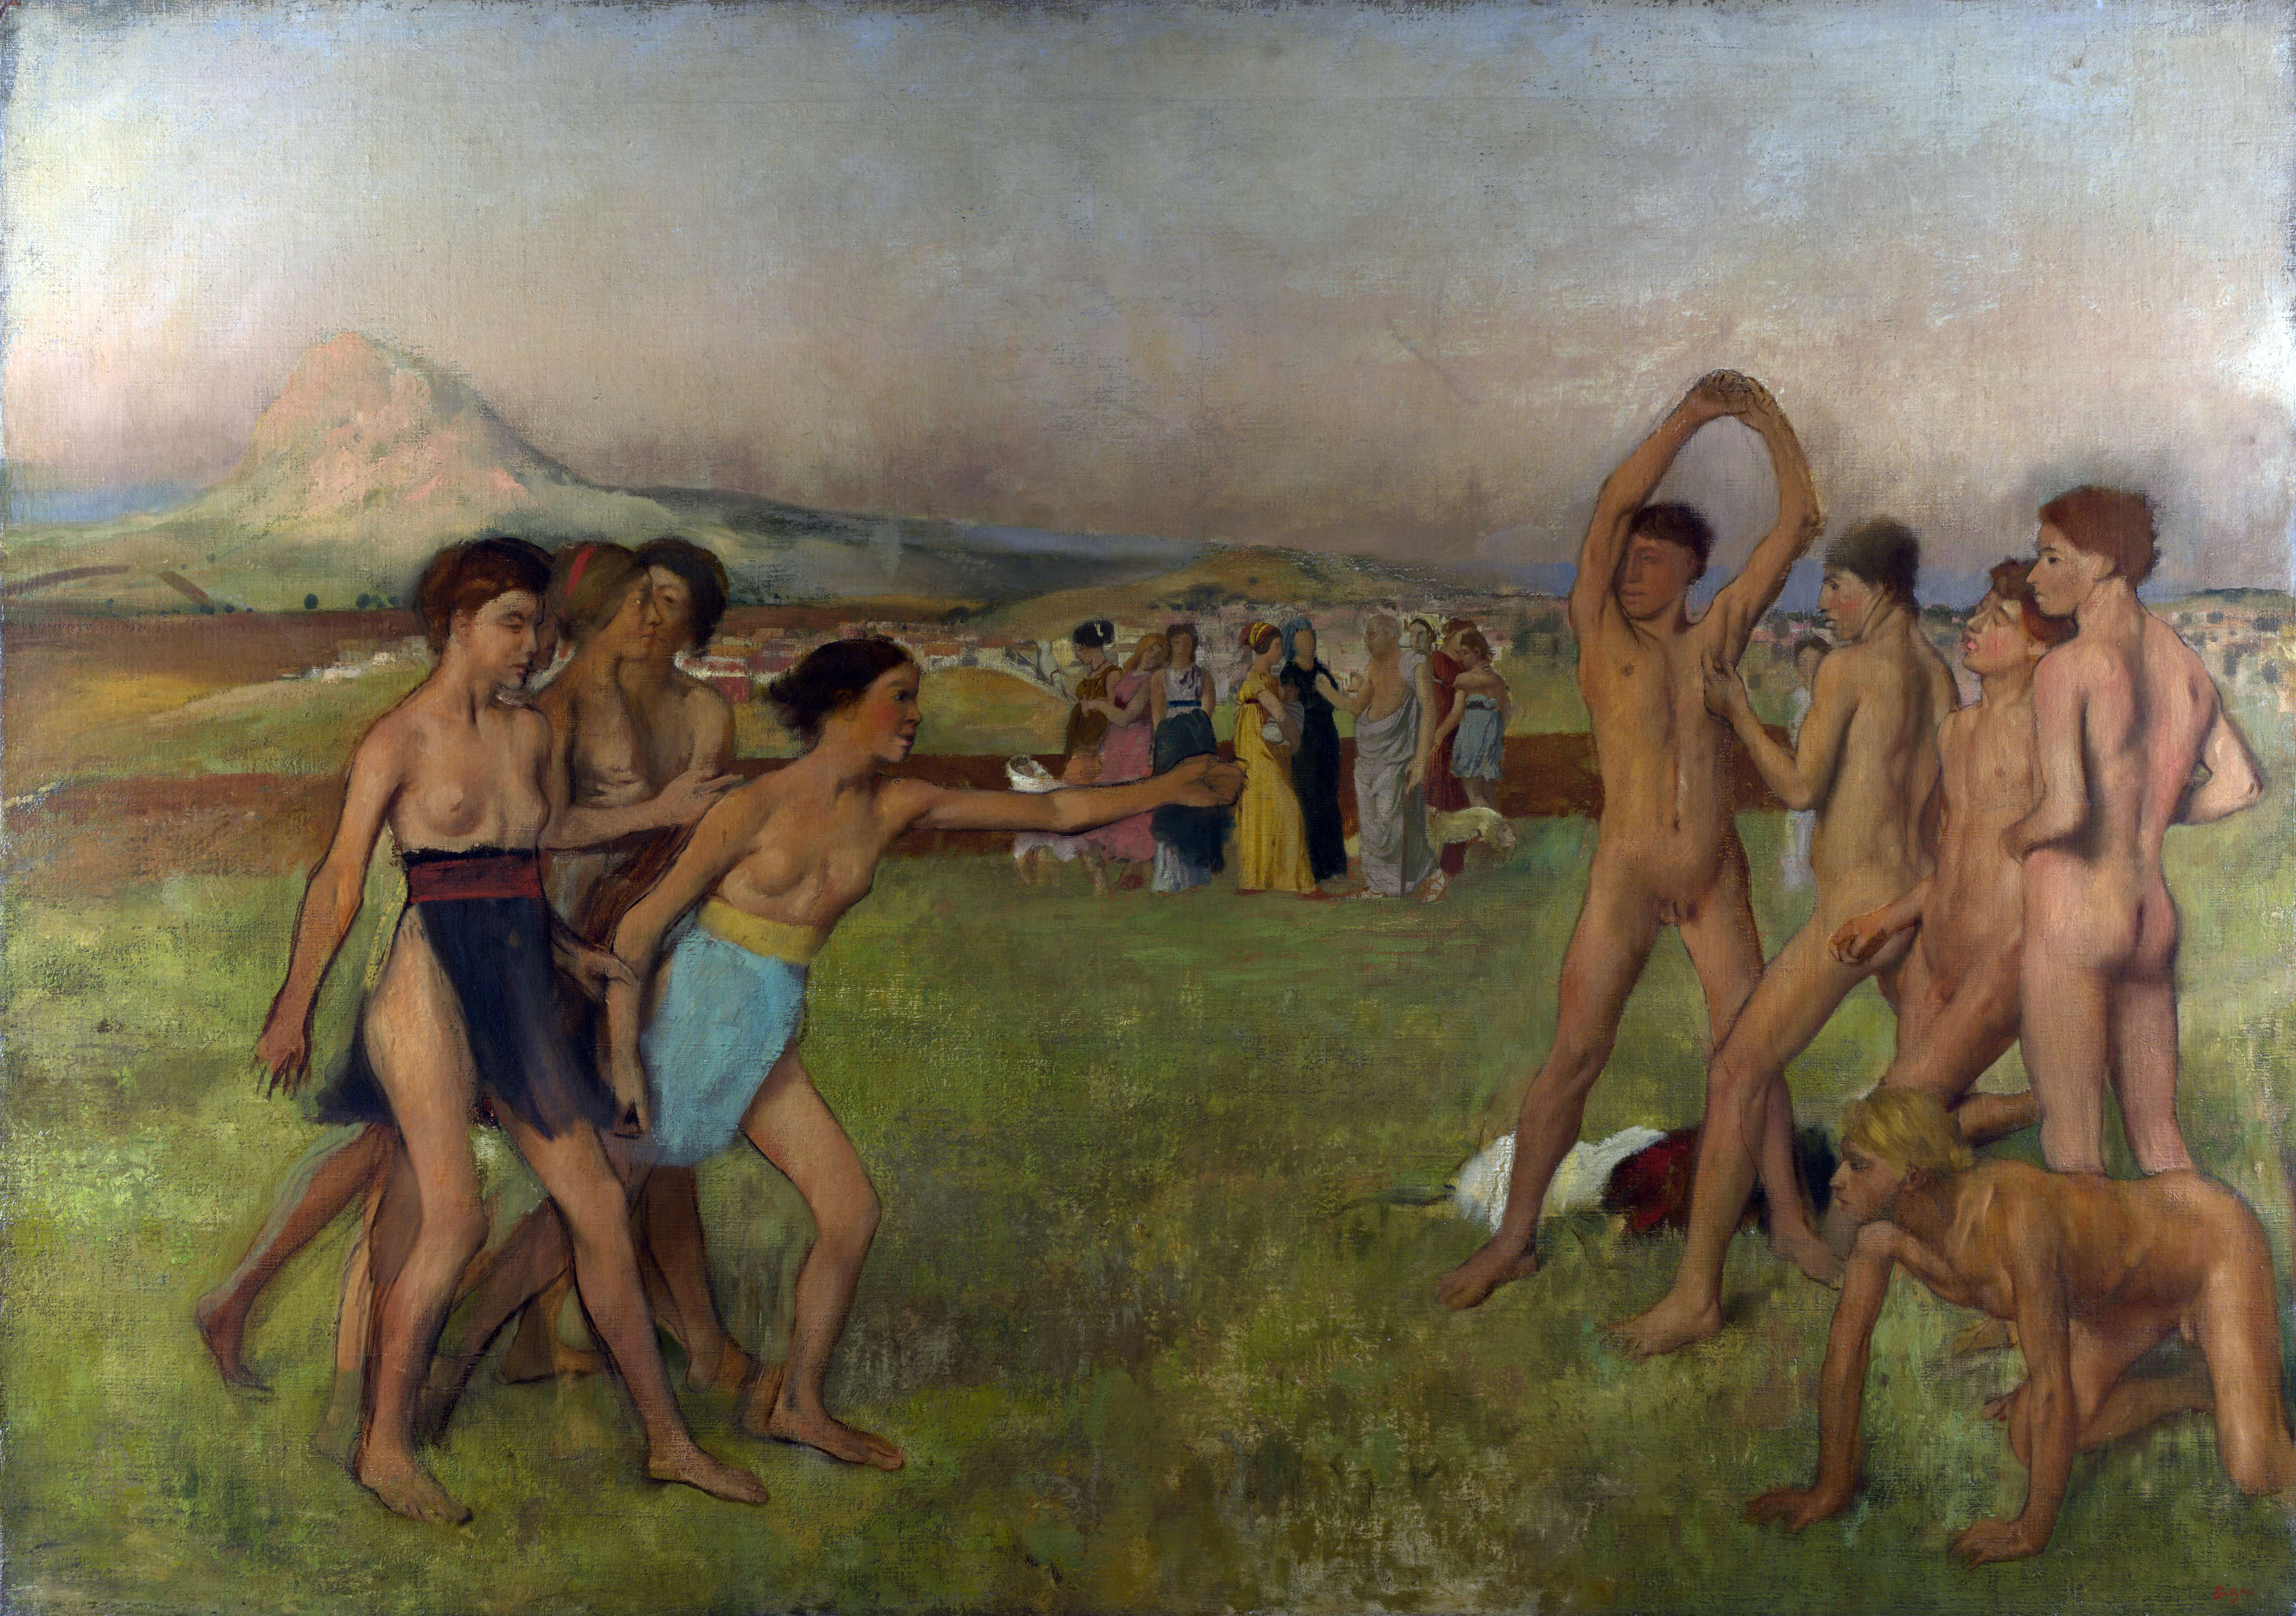 Νεαροί Σπαρτιάτες. Young Spartans Exercising by Edgar Degas (1834-1917)